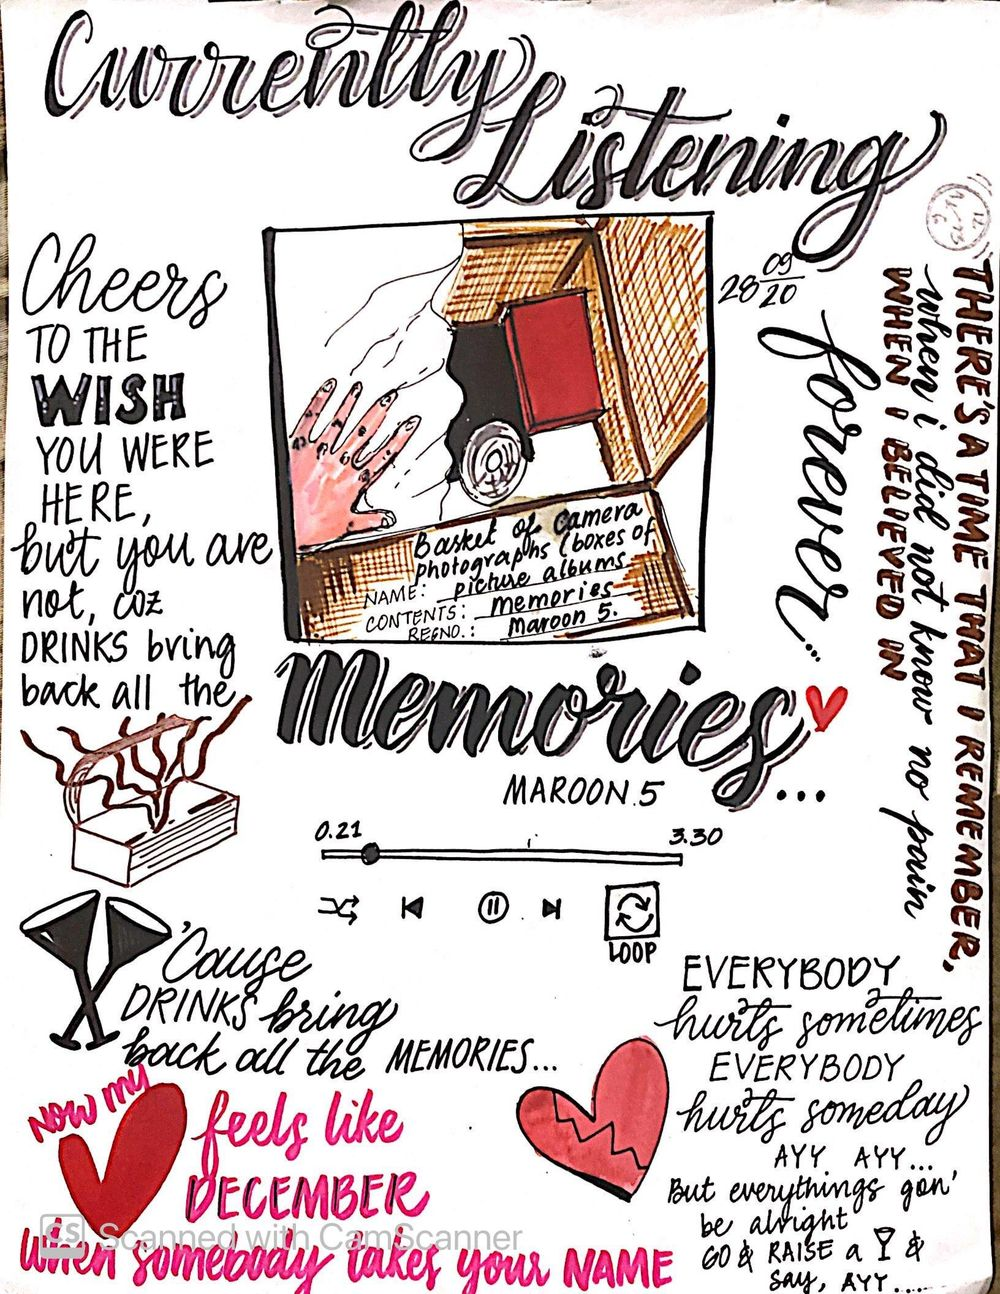 ILLUSTRATED JOURNALING BY DYLANN.M - image 14 - student project